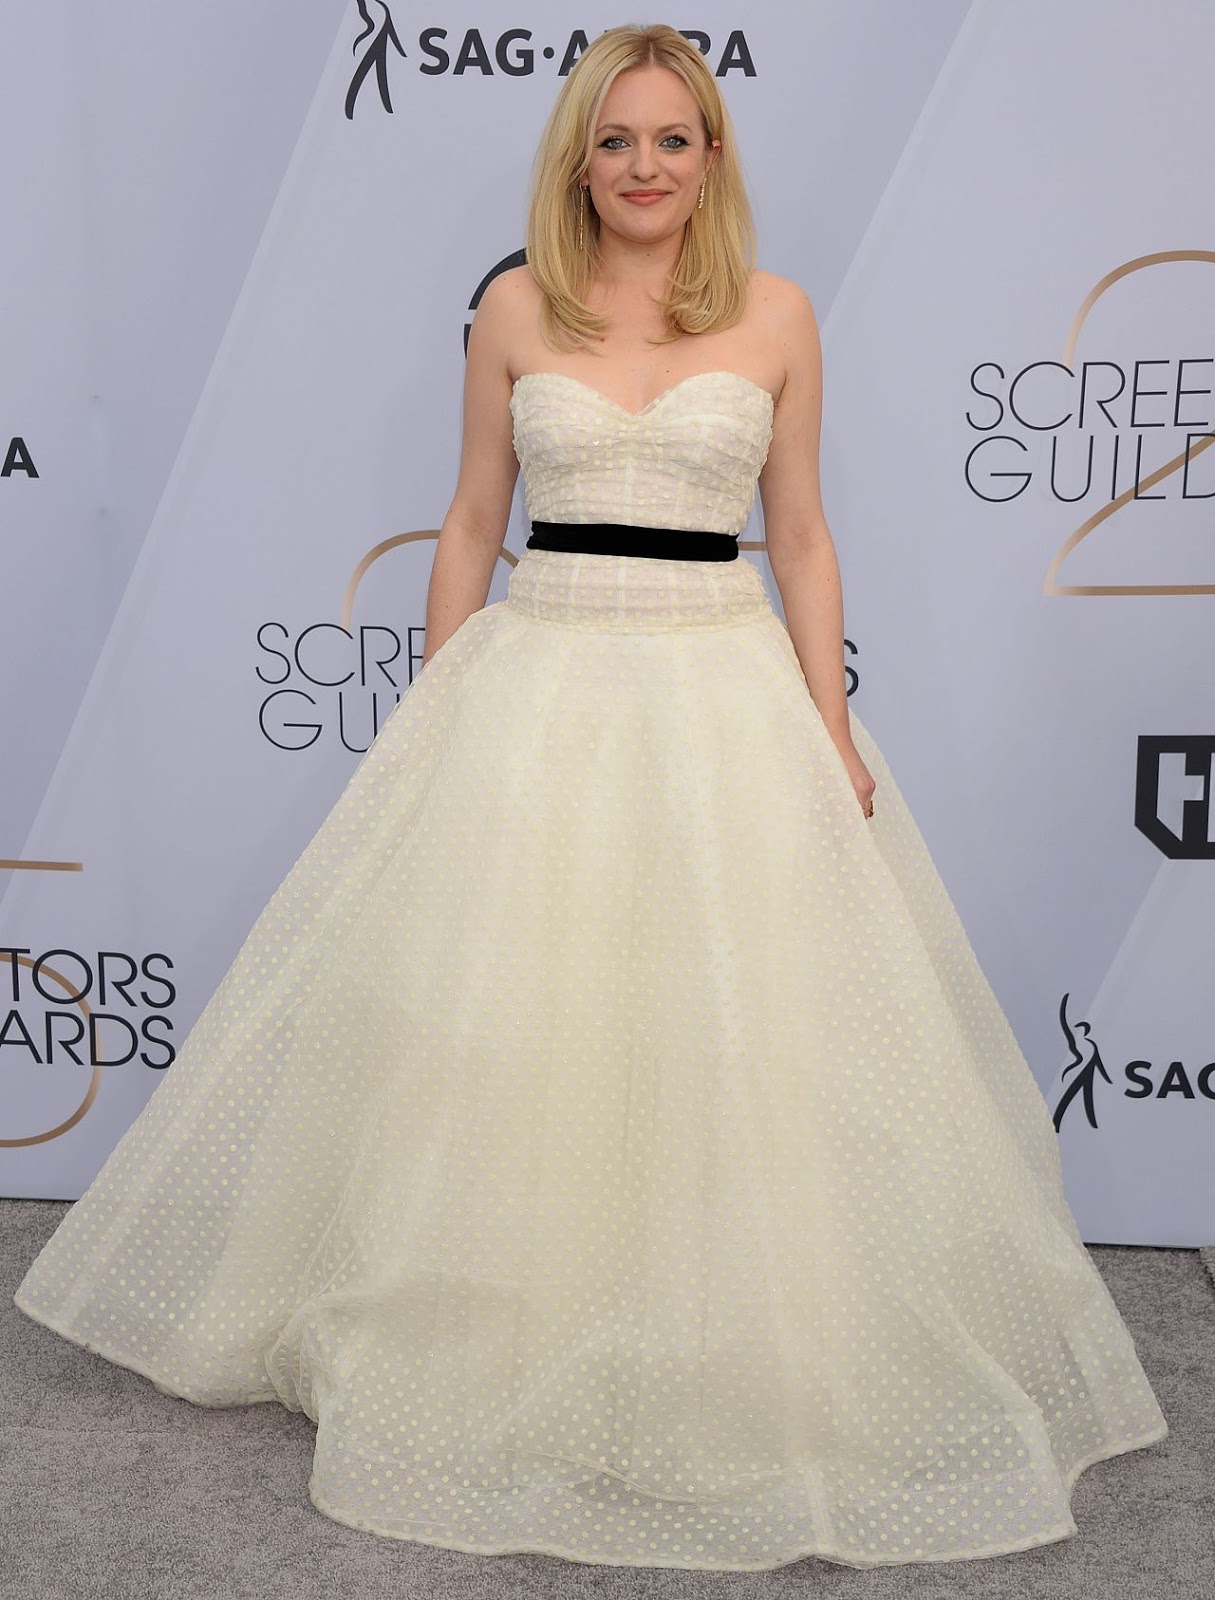 Elisabeth Moss dressed up like a princess for the 2019 SAG Awards